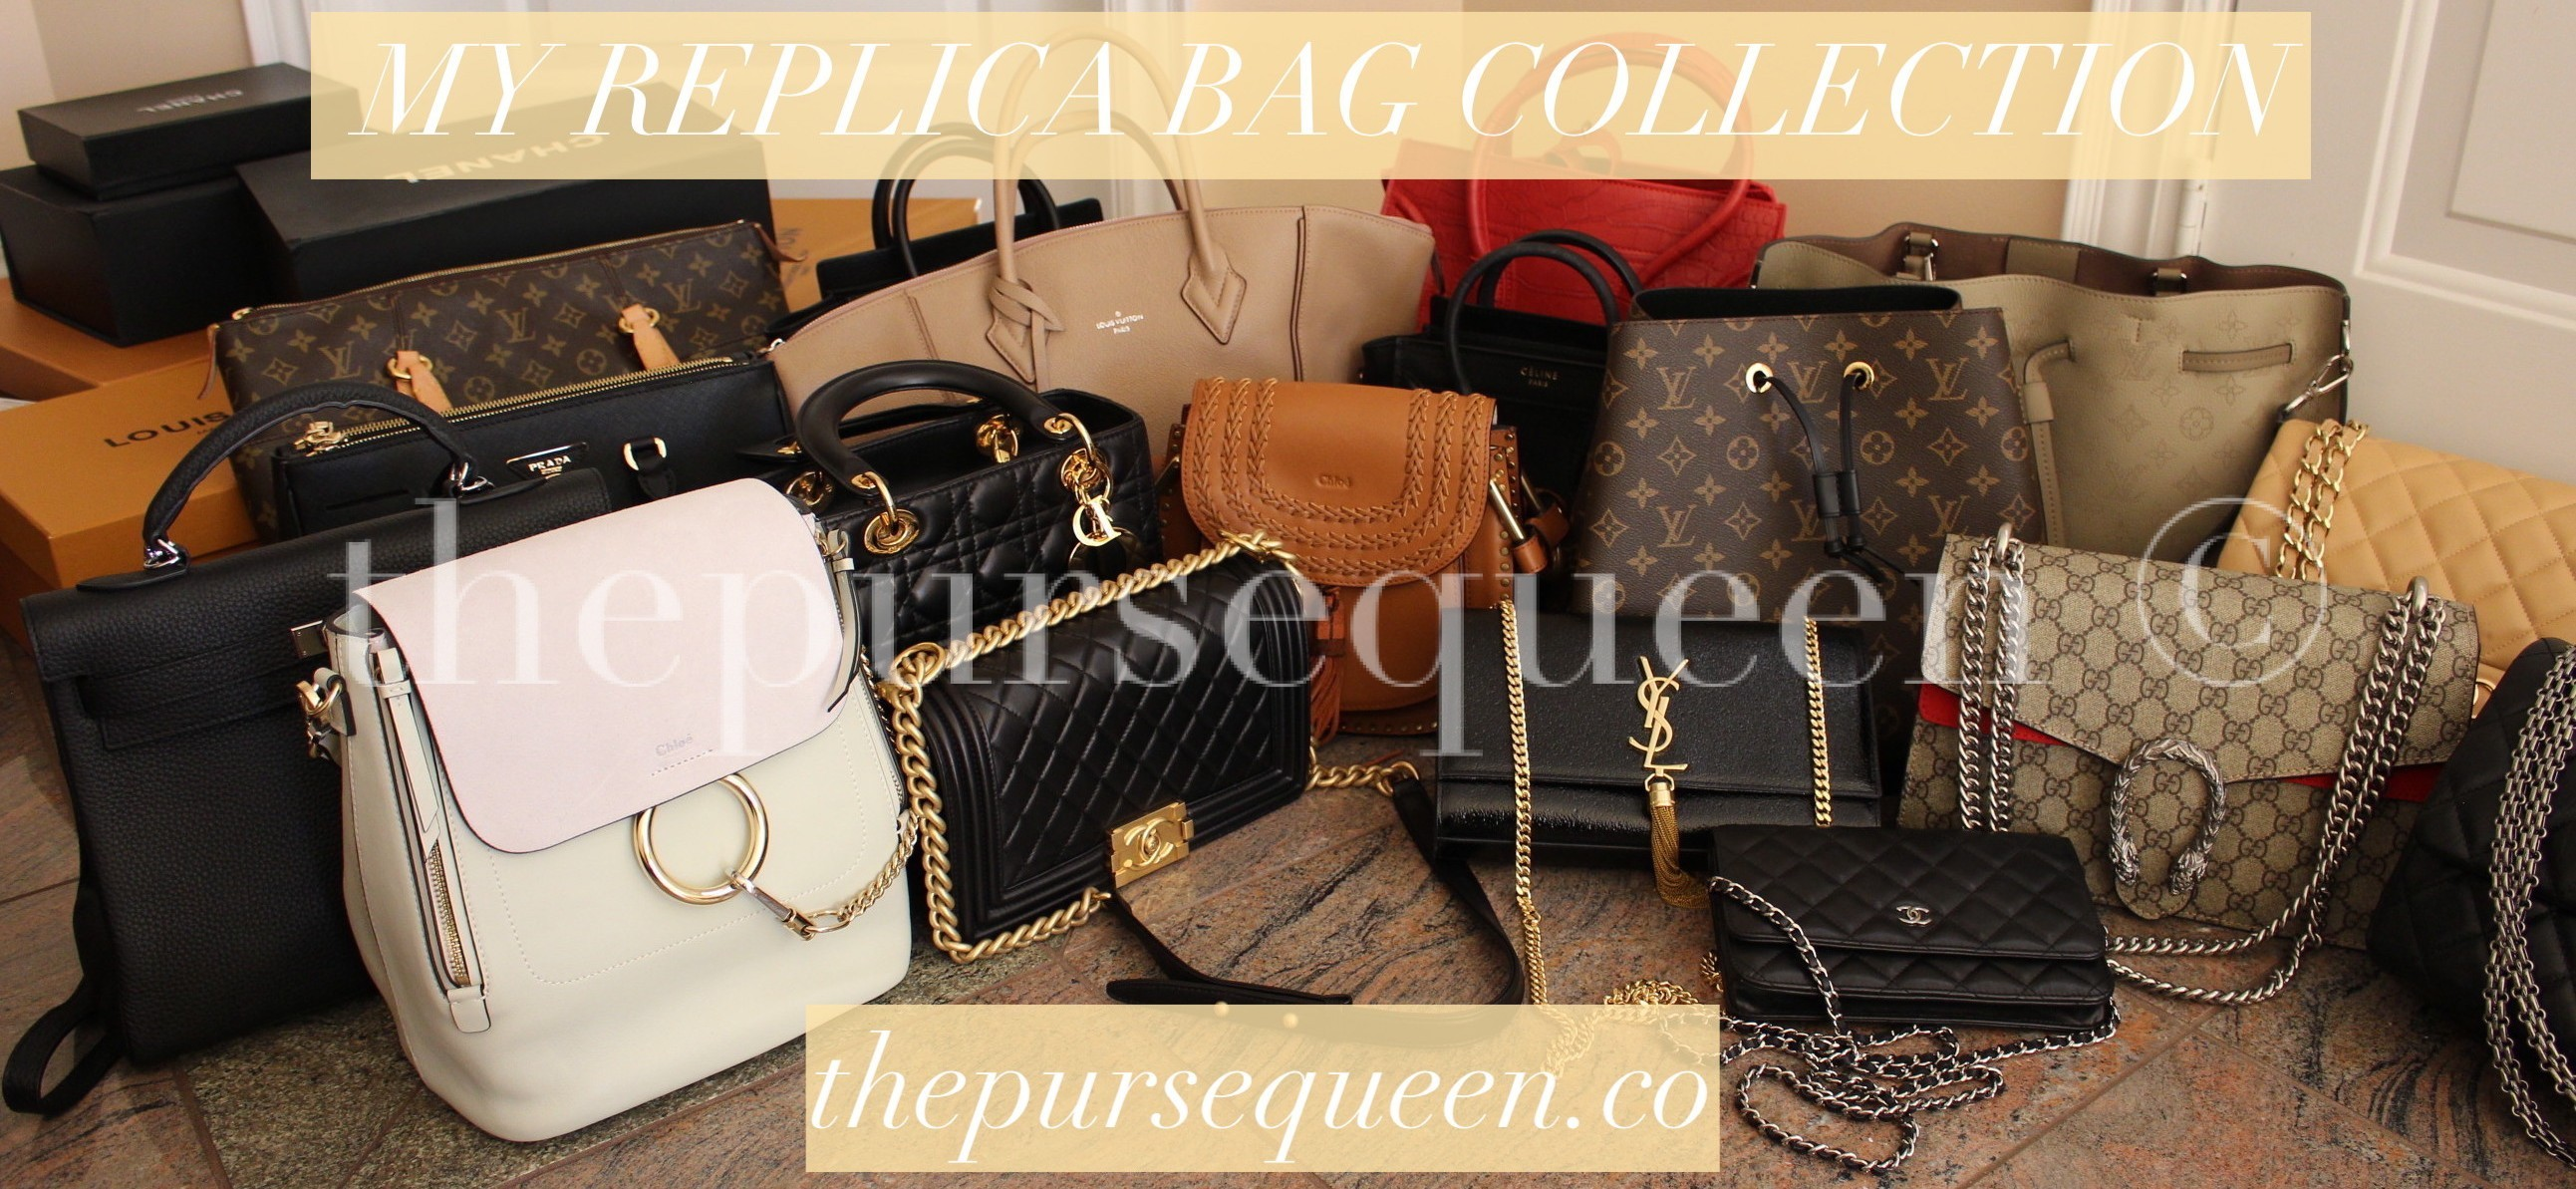 282e43d9b841ad RECOMMENDED REPLICA SELLERS LIST - Authentic   Replica Handbag Reviews by  The Purse Queen  replicabag